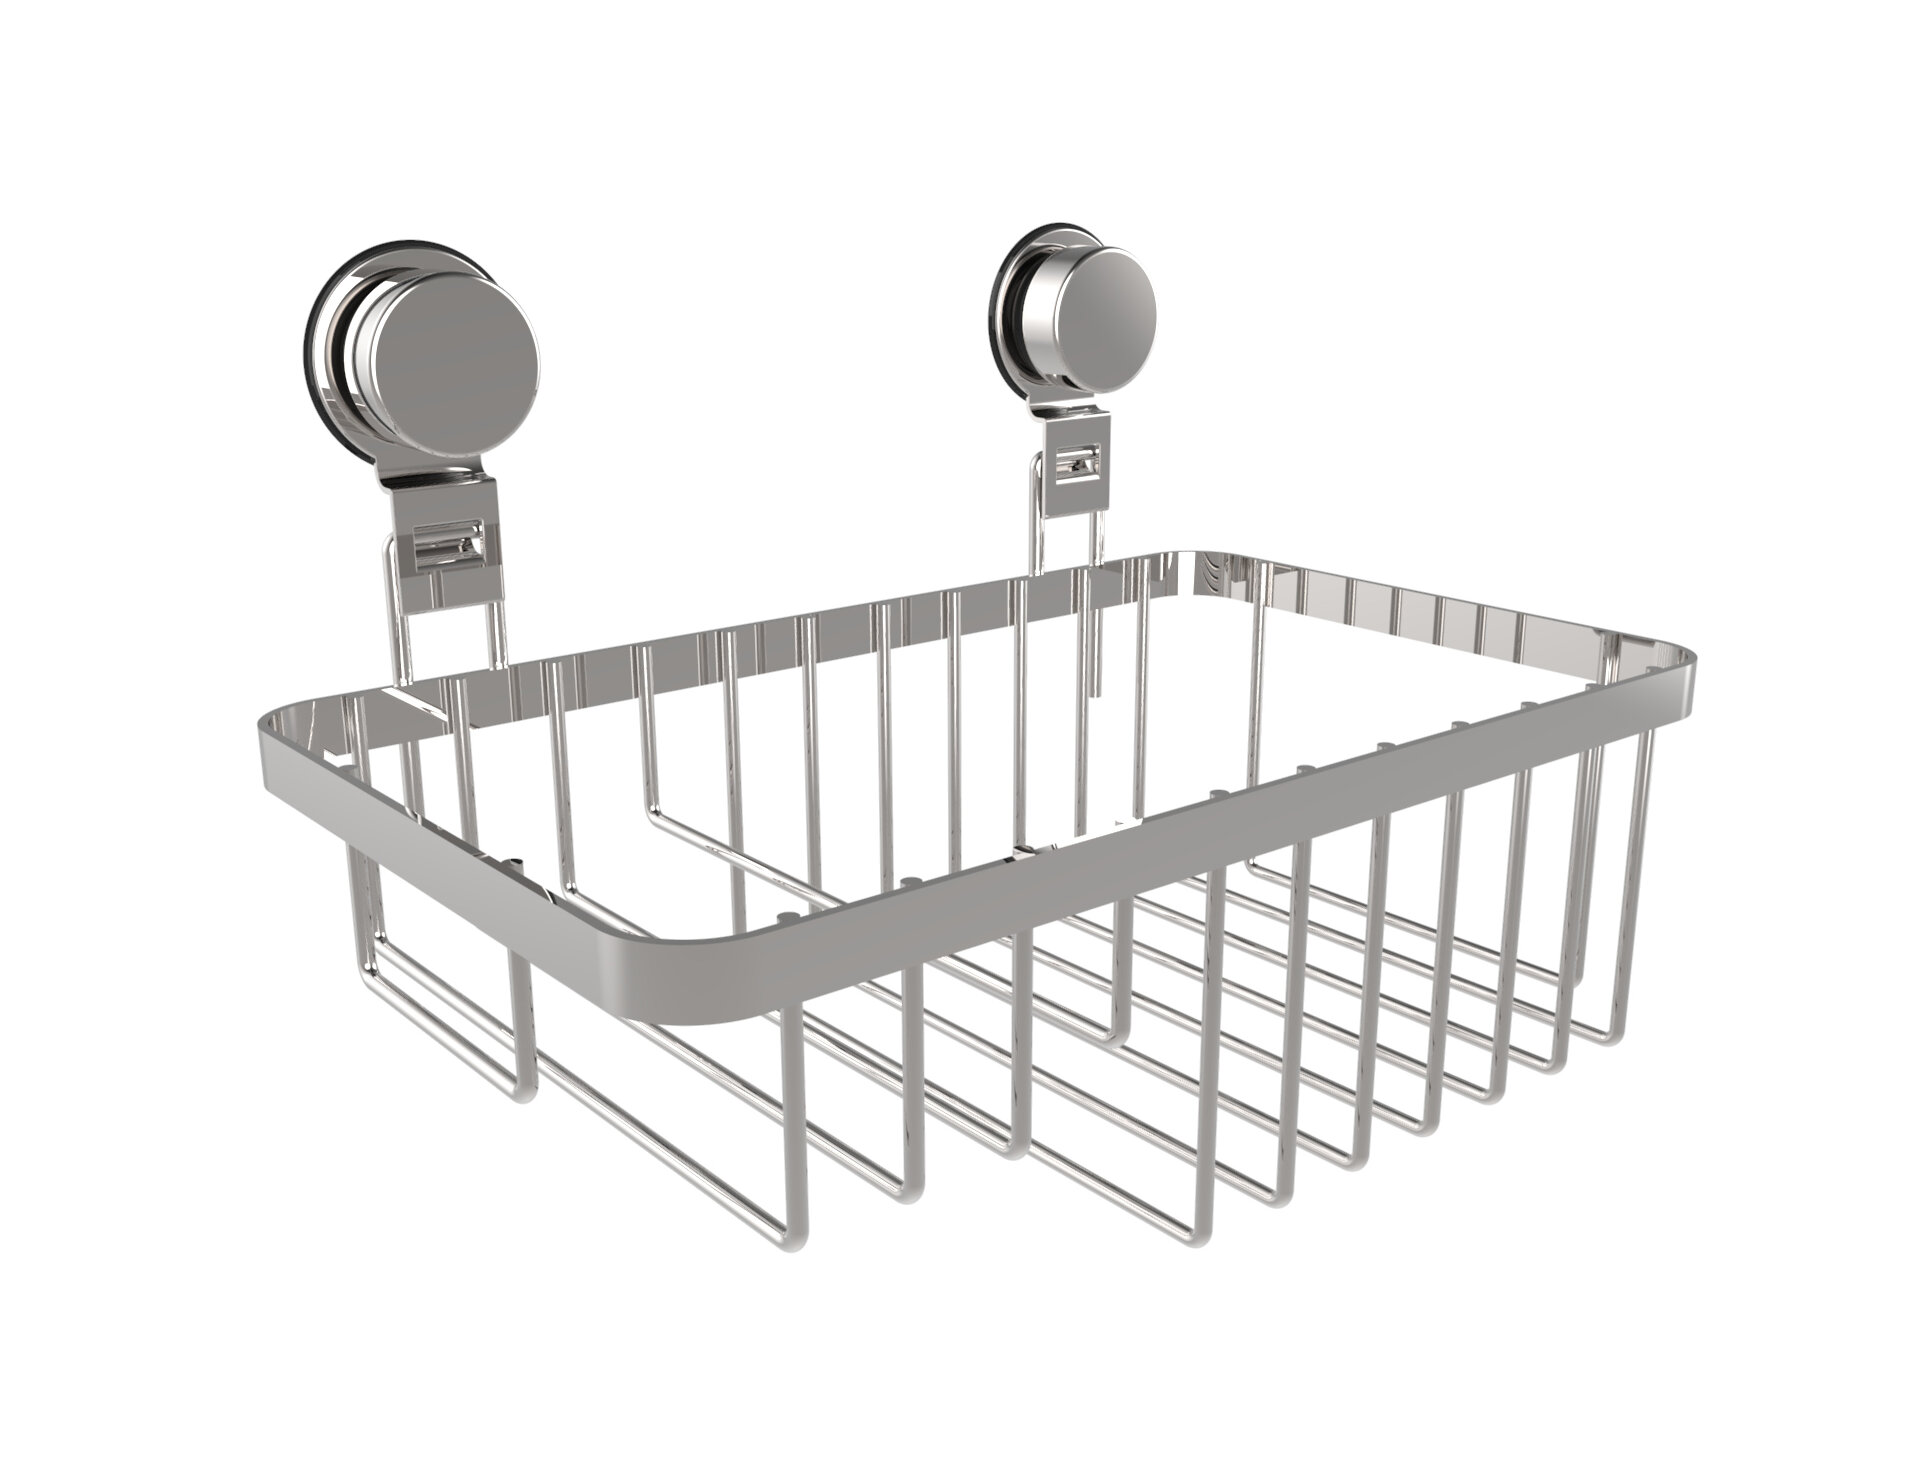 Rebrilliant Wall Mounted Shower Caddy & Reviews | Wayfair